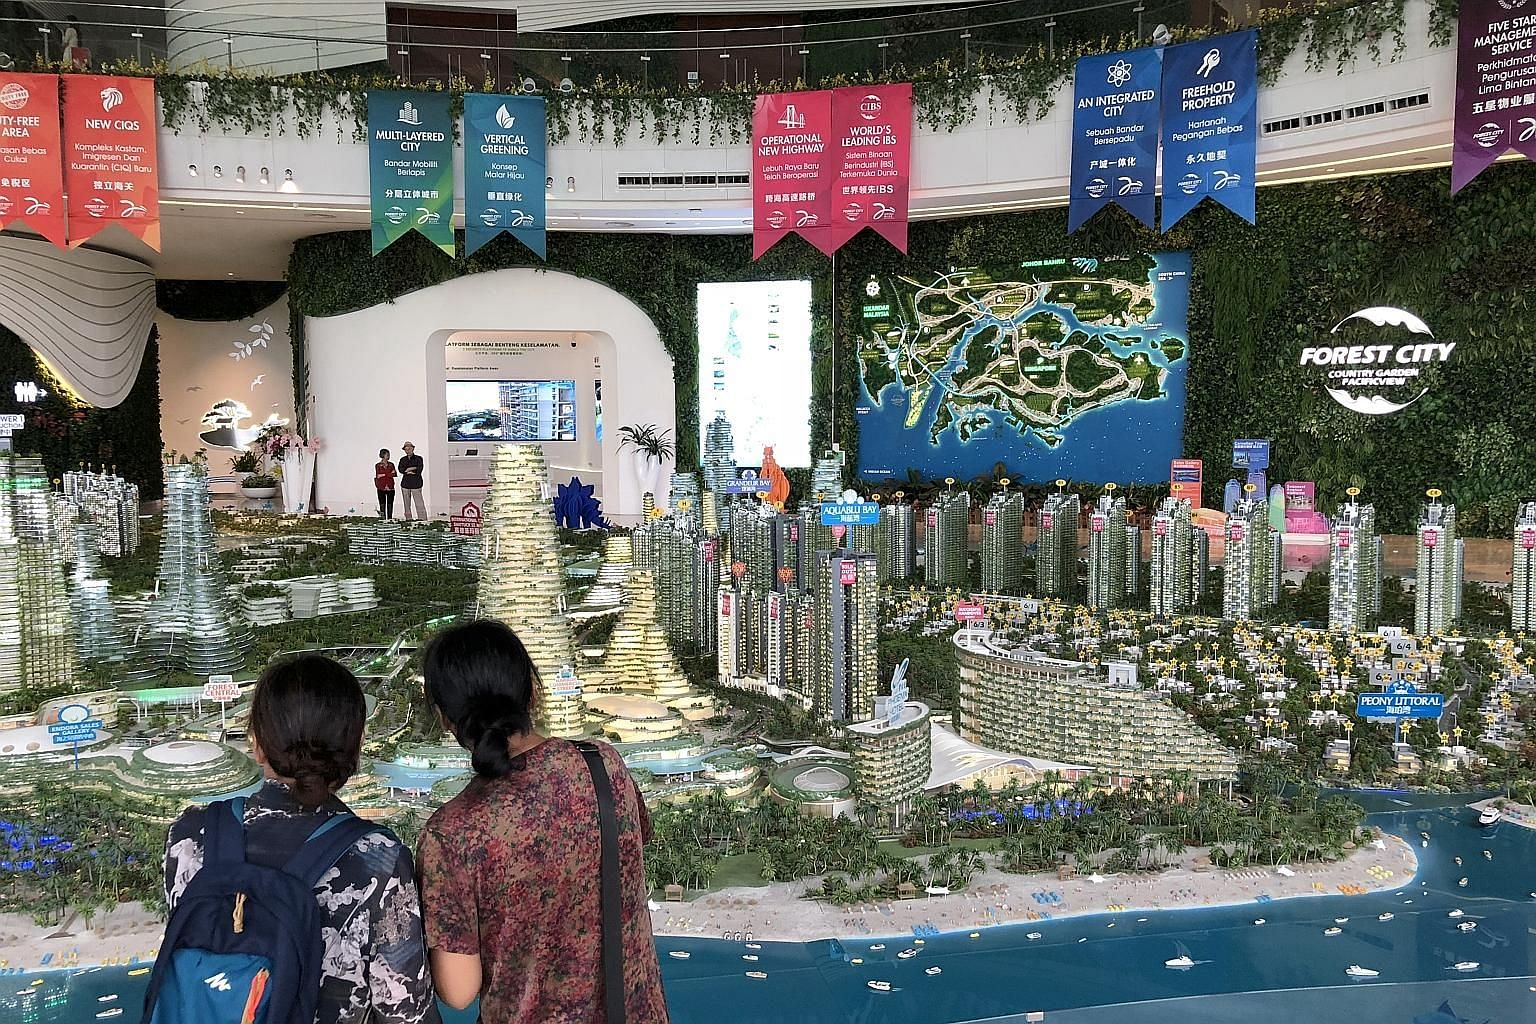 Visitors at the Forest City showroom in Johor Baru on Tuesday. Dr Mahathir Mohamad said on Monday that foreigners will be blocked from buying units in developer Country Garden's project and refused visas to live there.